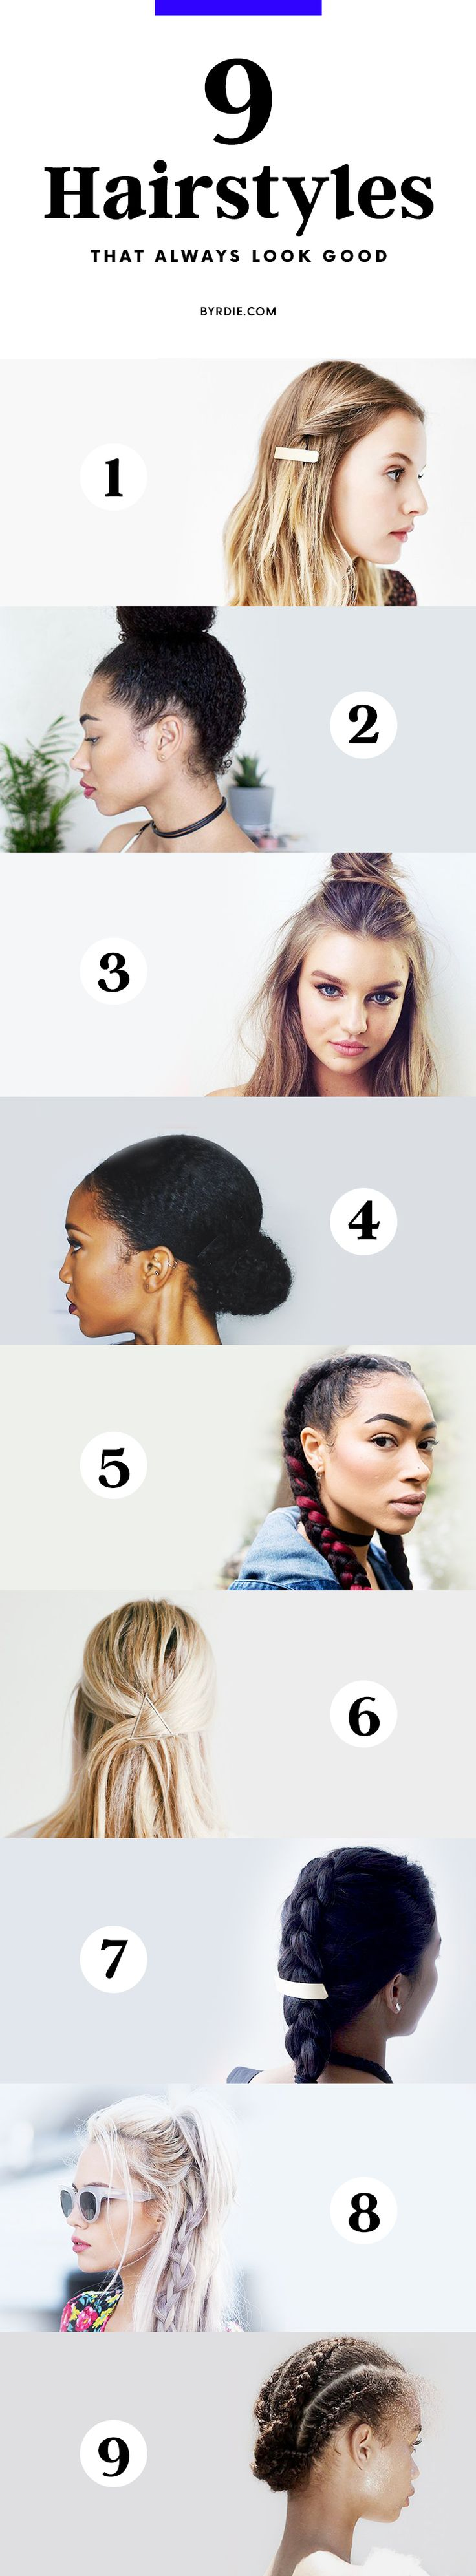 Best HairStyles For 2017/ 2018 - Hairstyles that look good on ...